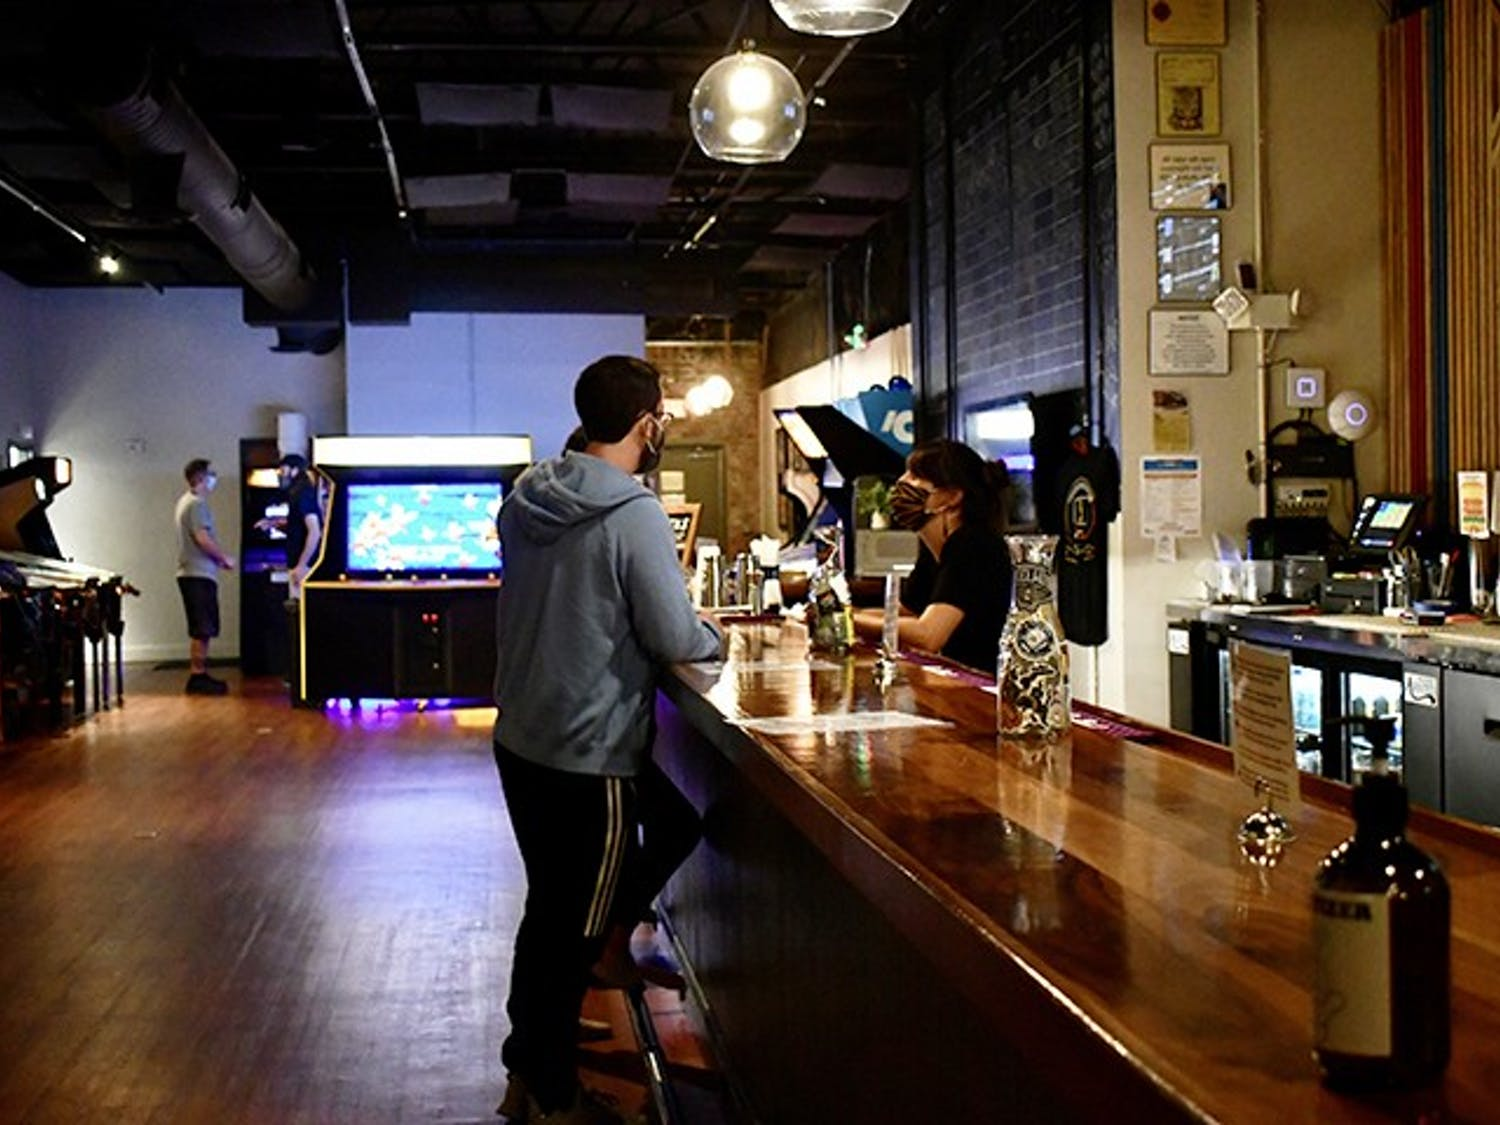 A customer orders from the bar in Transmission Arcade. The arcade is full of retro-themed games and artwork.